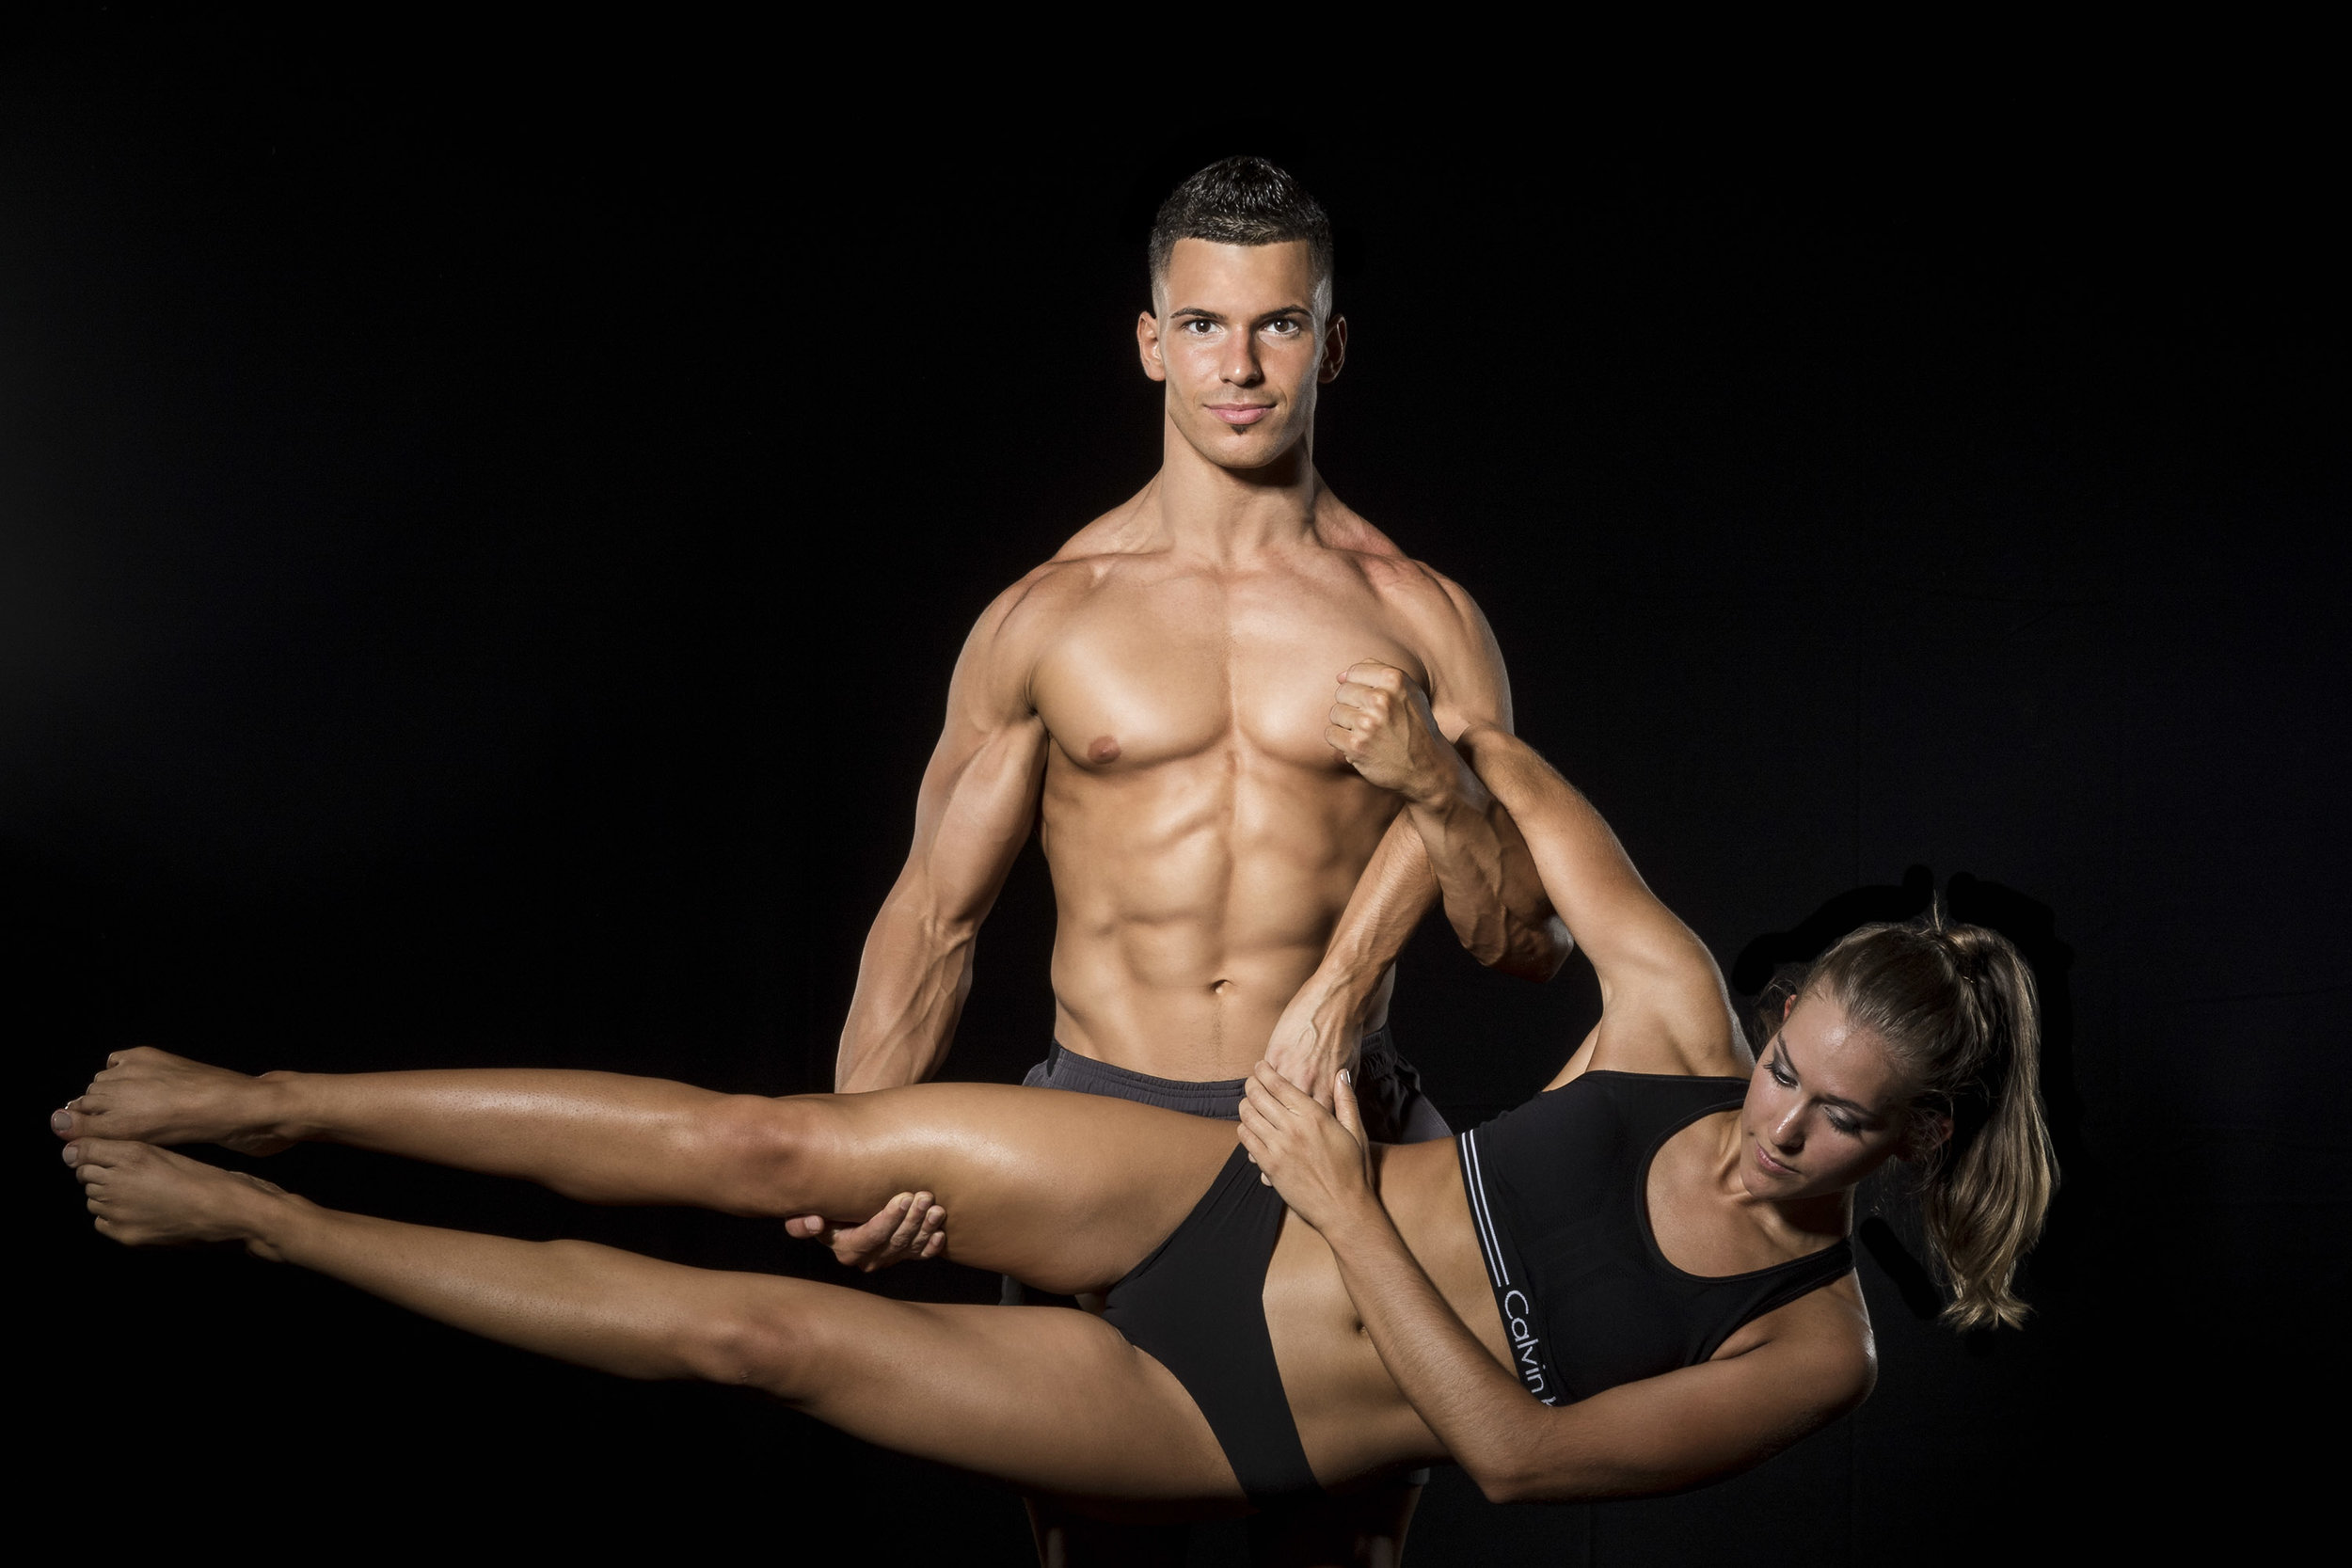 male-fitness-model-lifting-woman.jpg